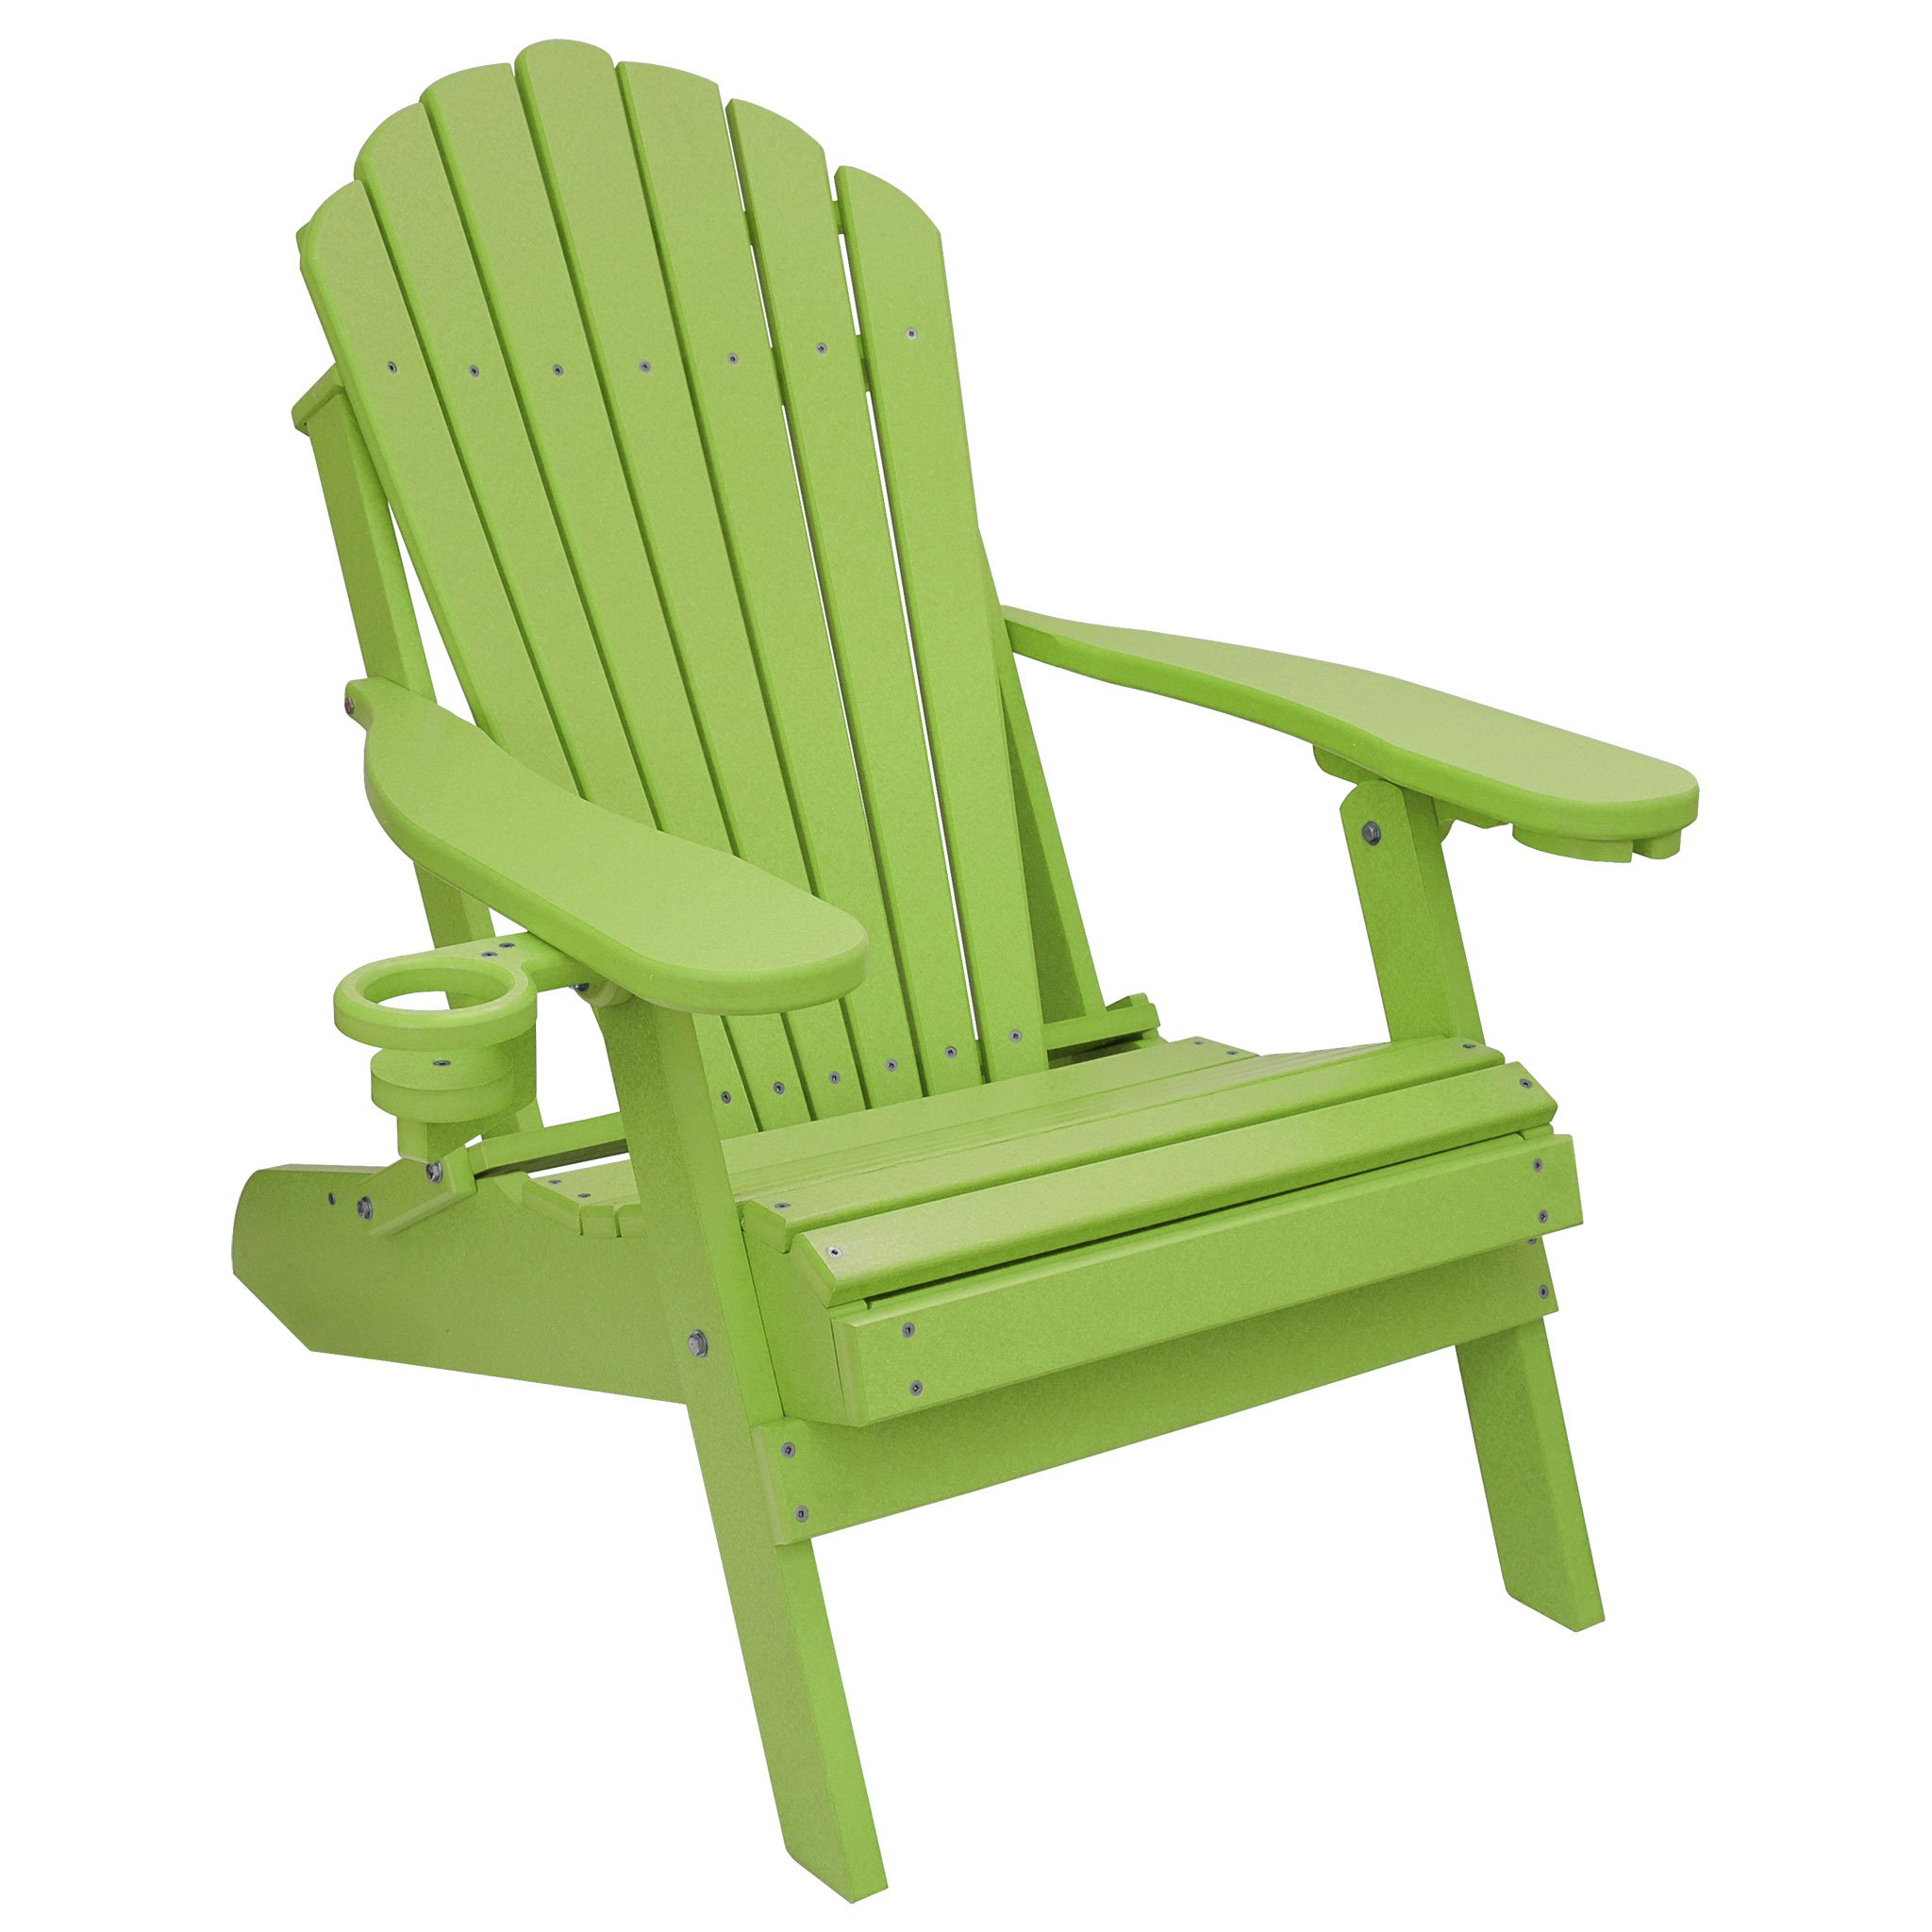 ECCB Outdoor Outer Banks Deluxe Oversized Poly Lumber Folding Adirondack Chair (Lime) by ECCB Outdoor